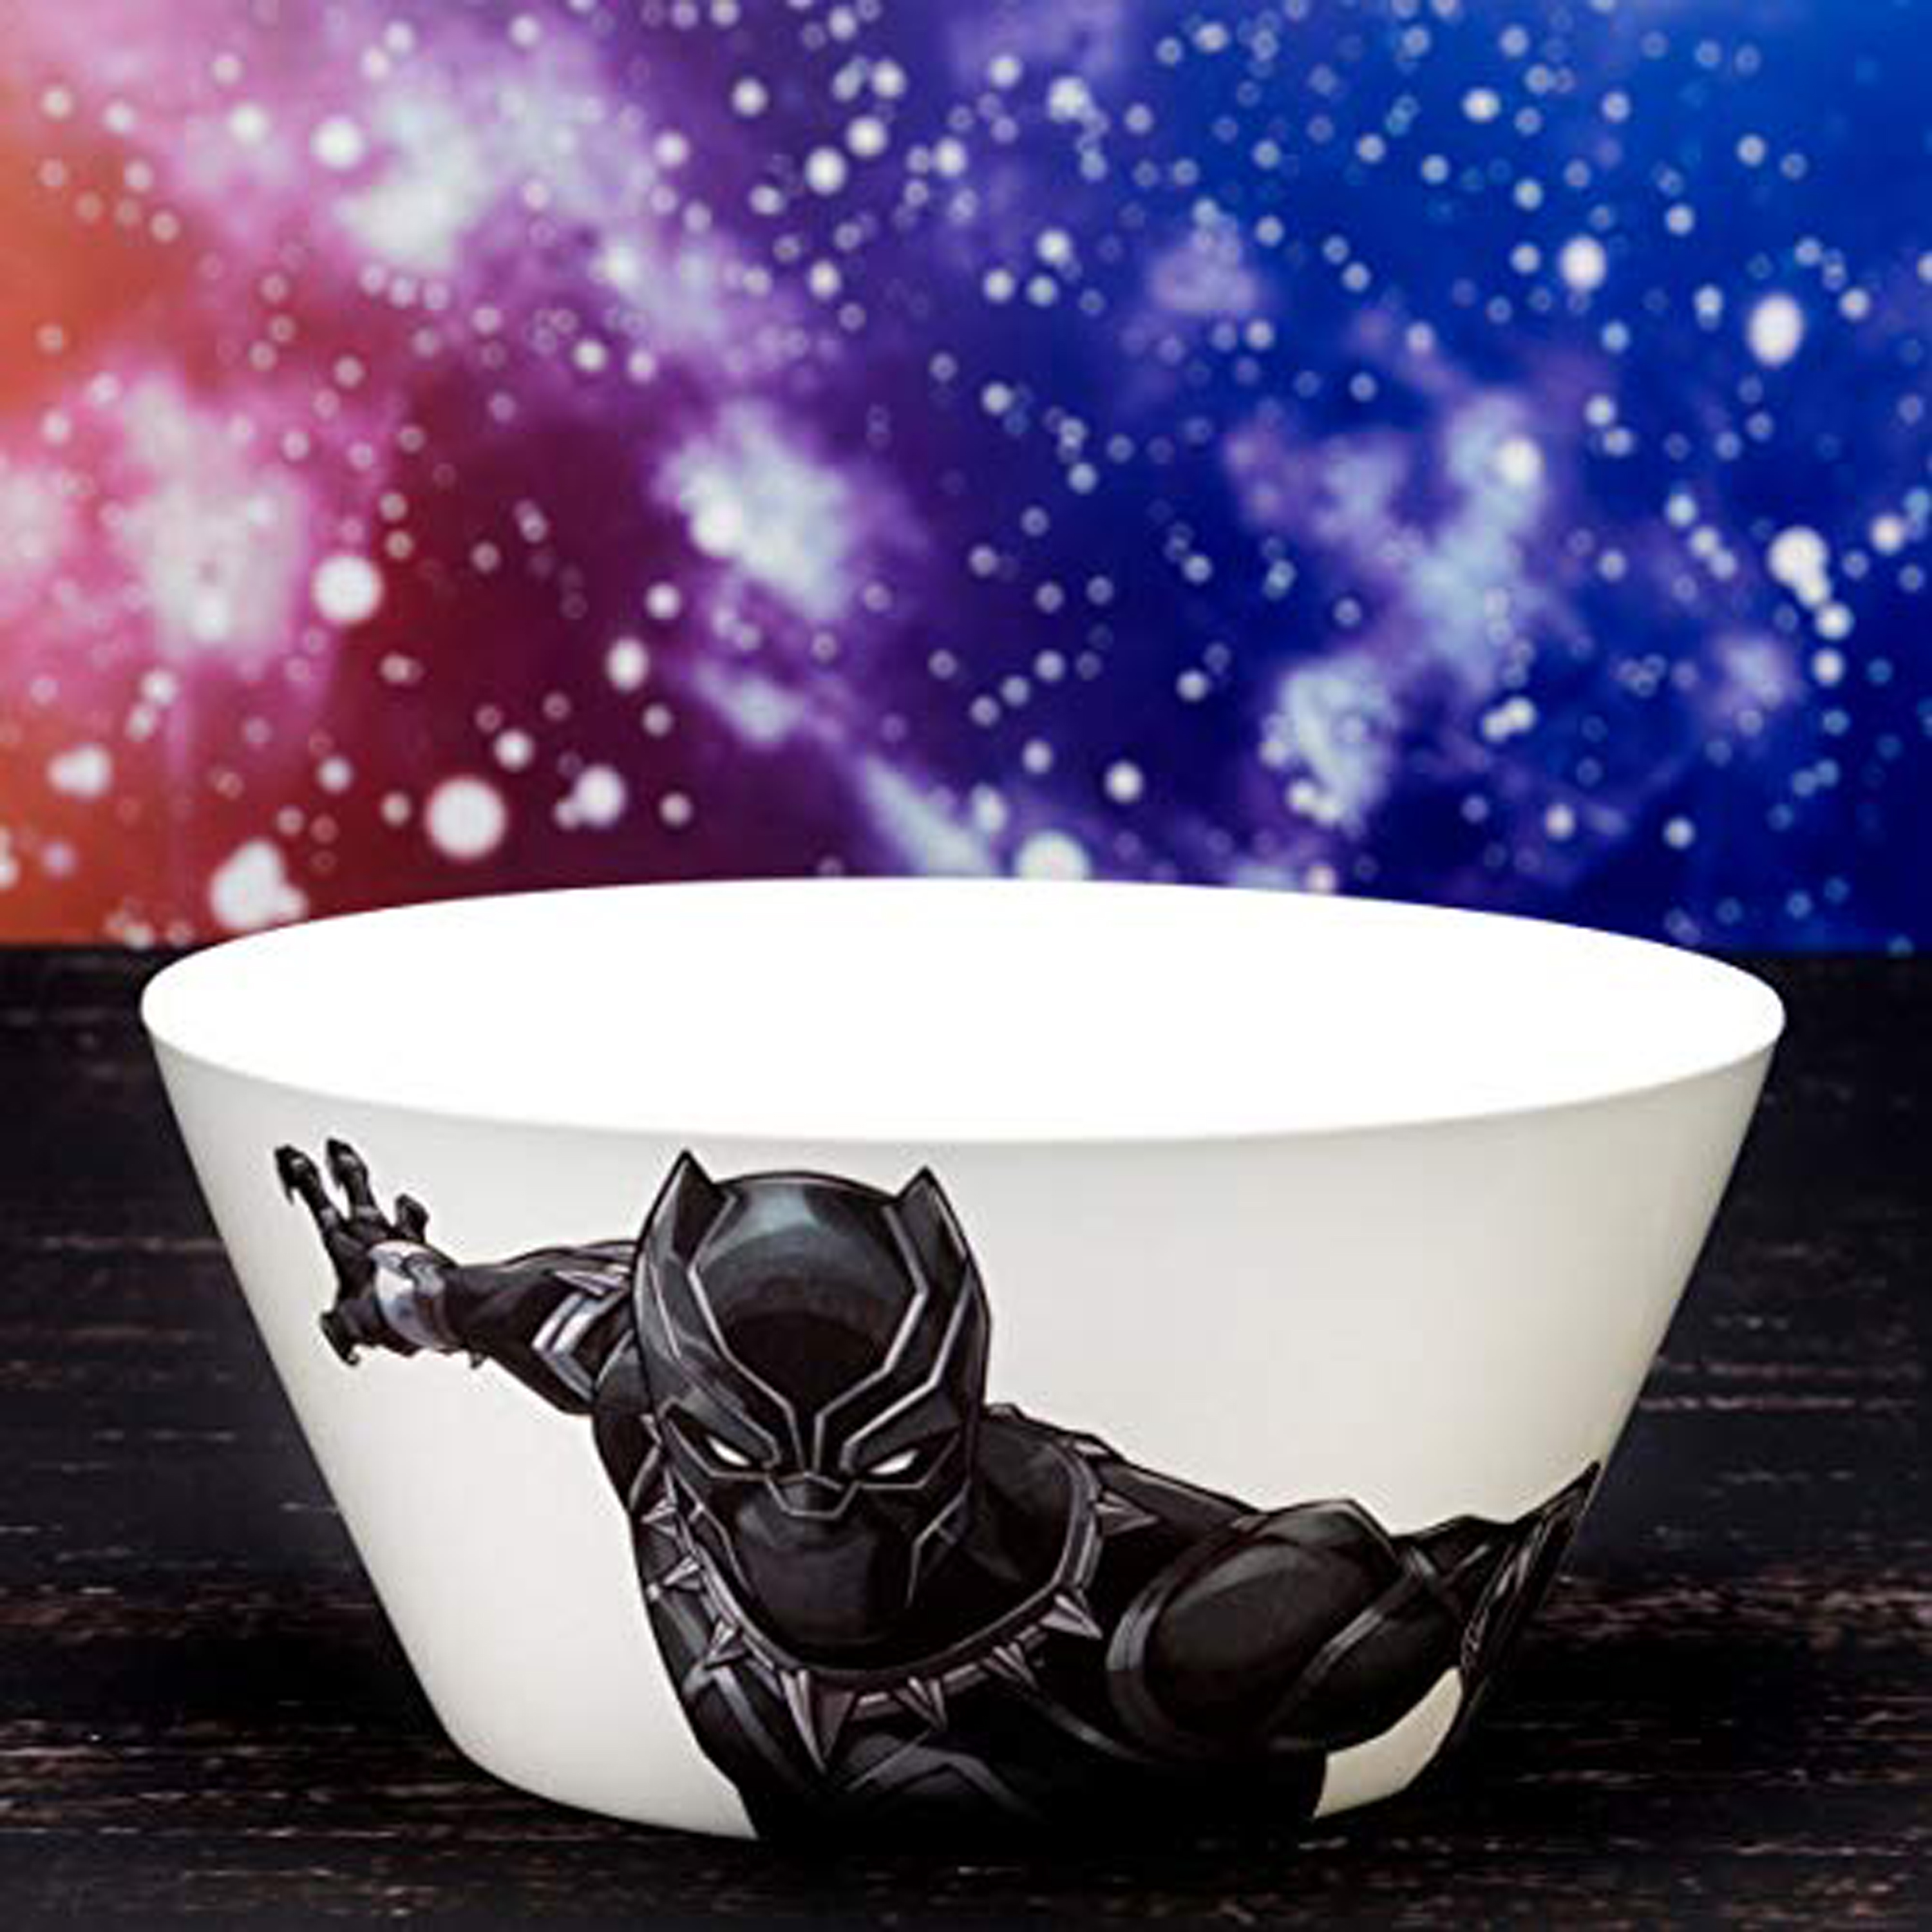 Marvel Comics Dinnerware Set, Black Panther & The Avengers, 2-piece set slideshow image 10